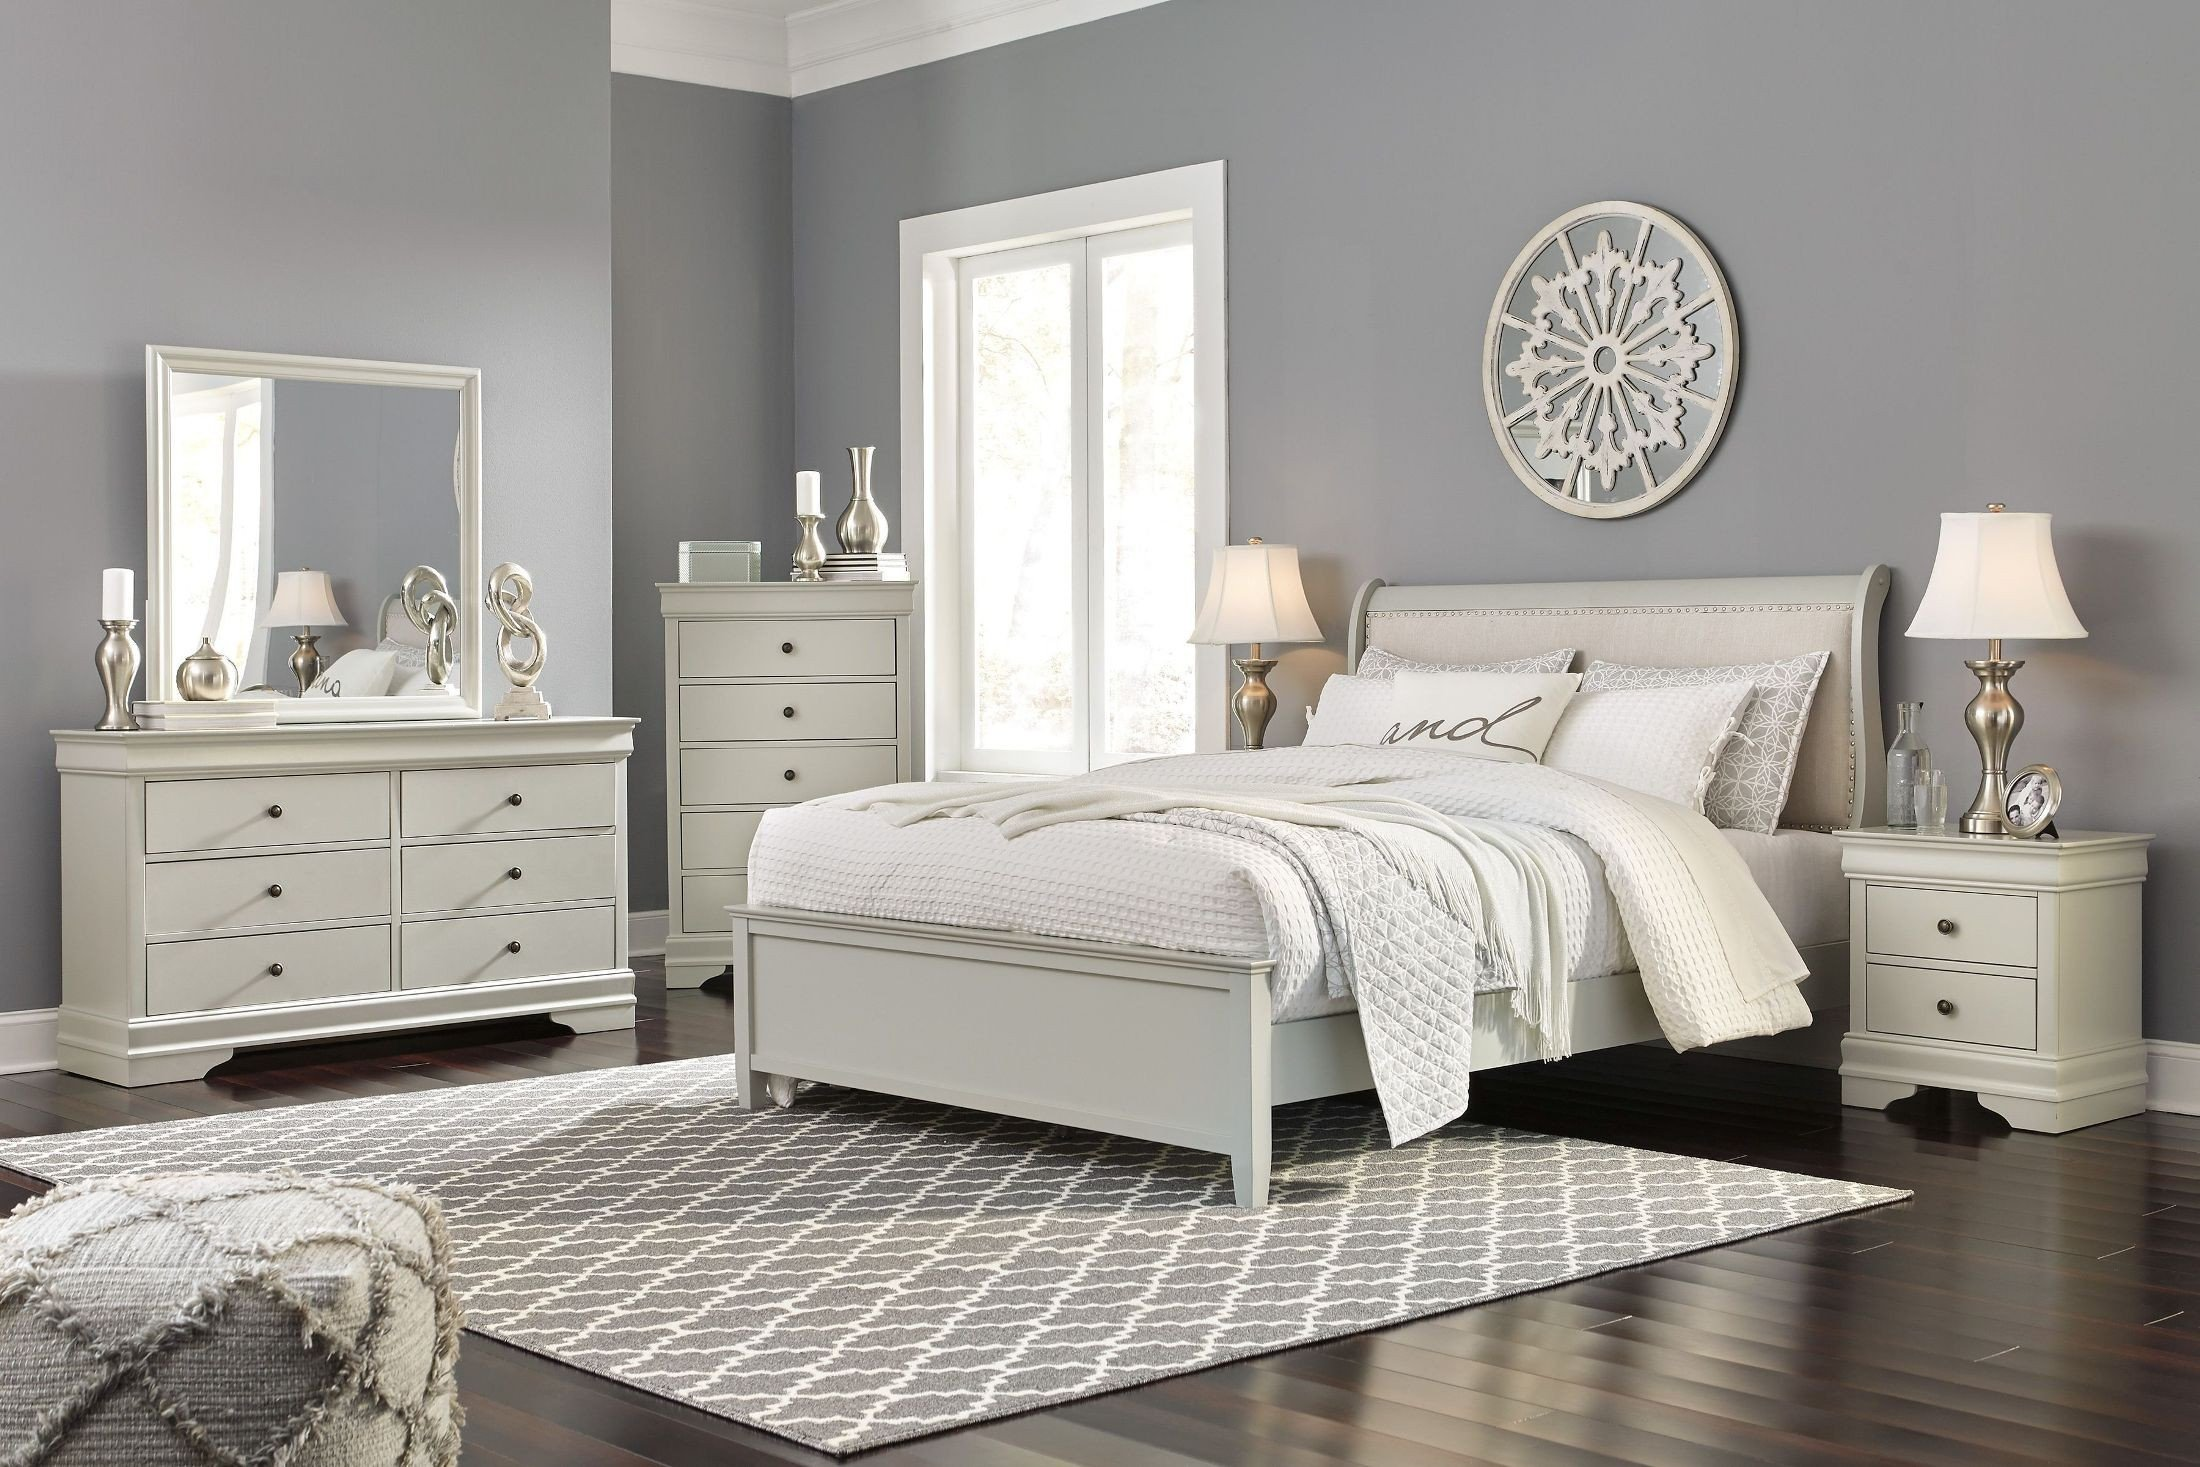 4 Piece Queen Bedroom Set Elegant Emma Mason Signature Jarred 5 Piece Sleigh Bedroom Set In Gray